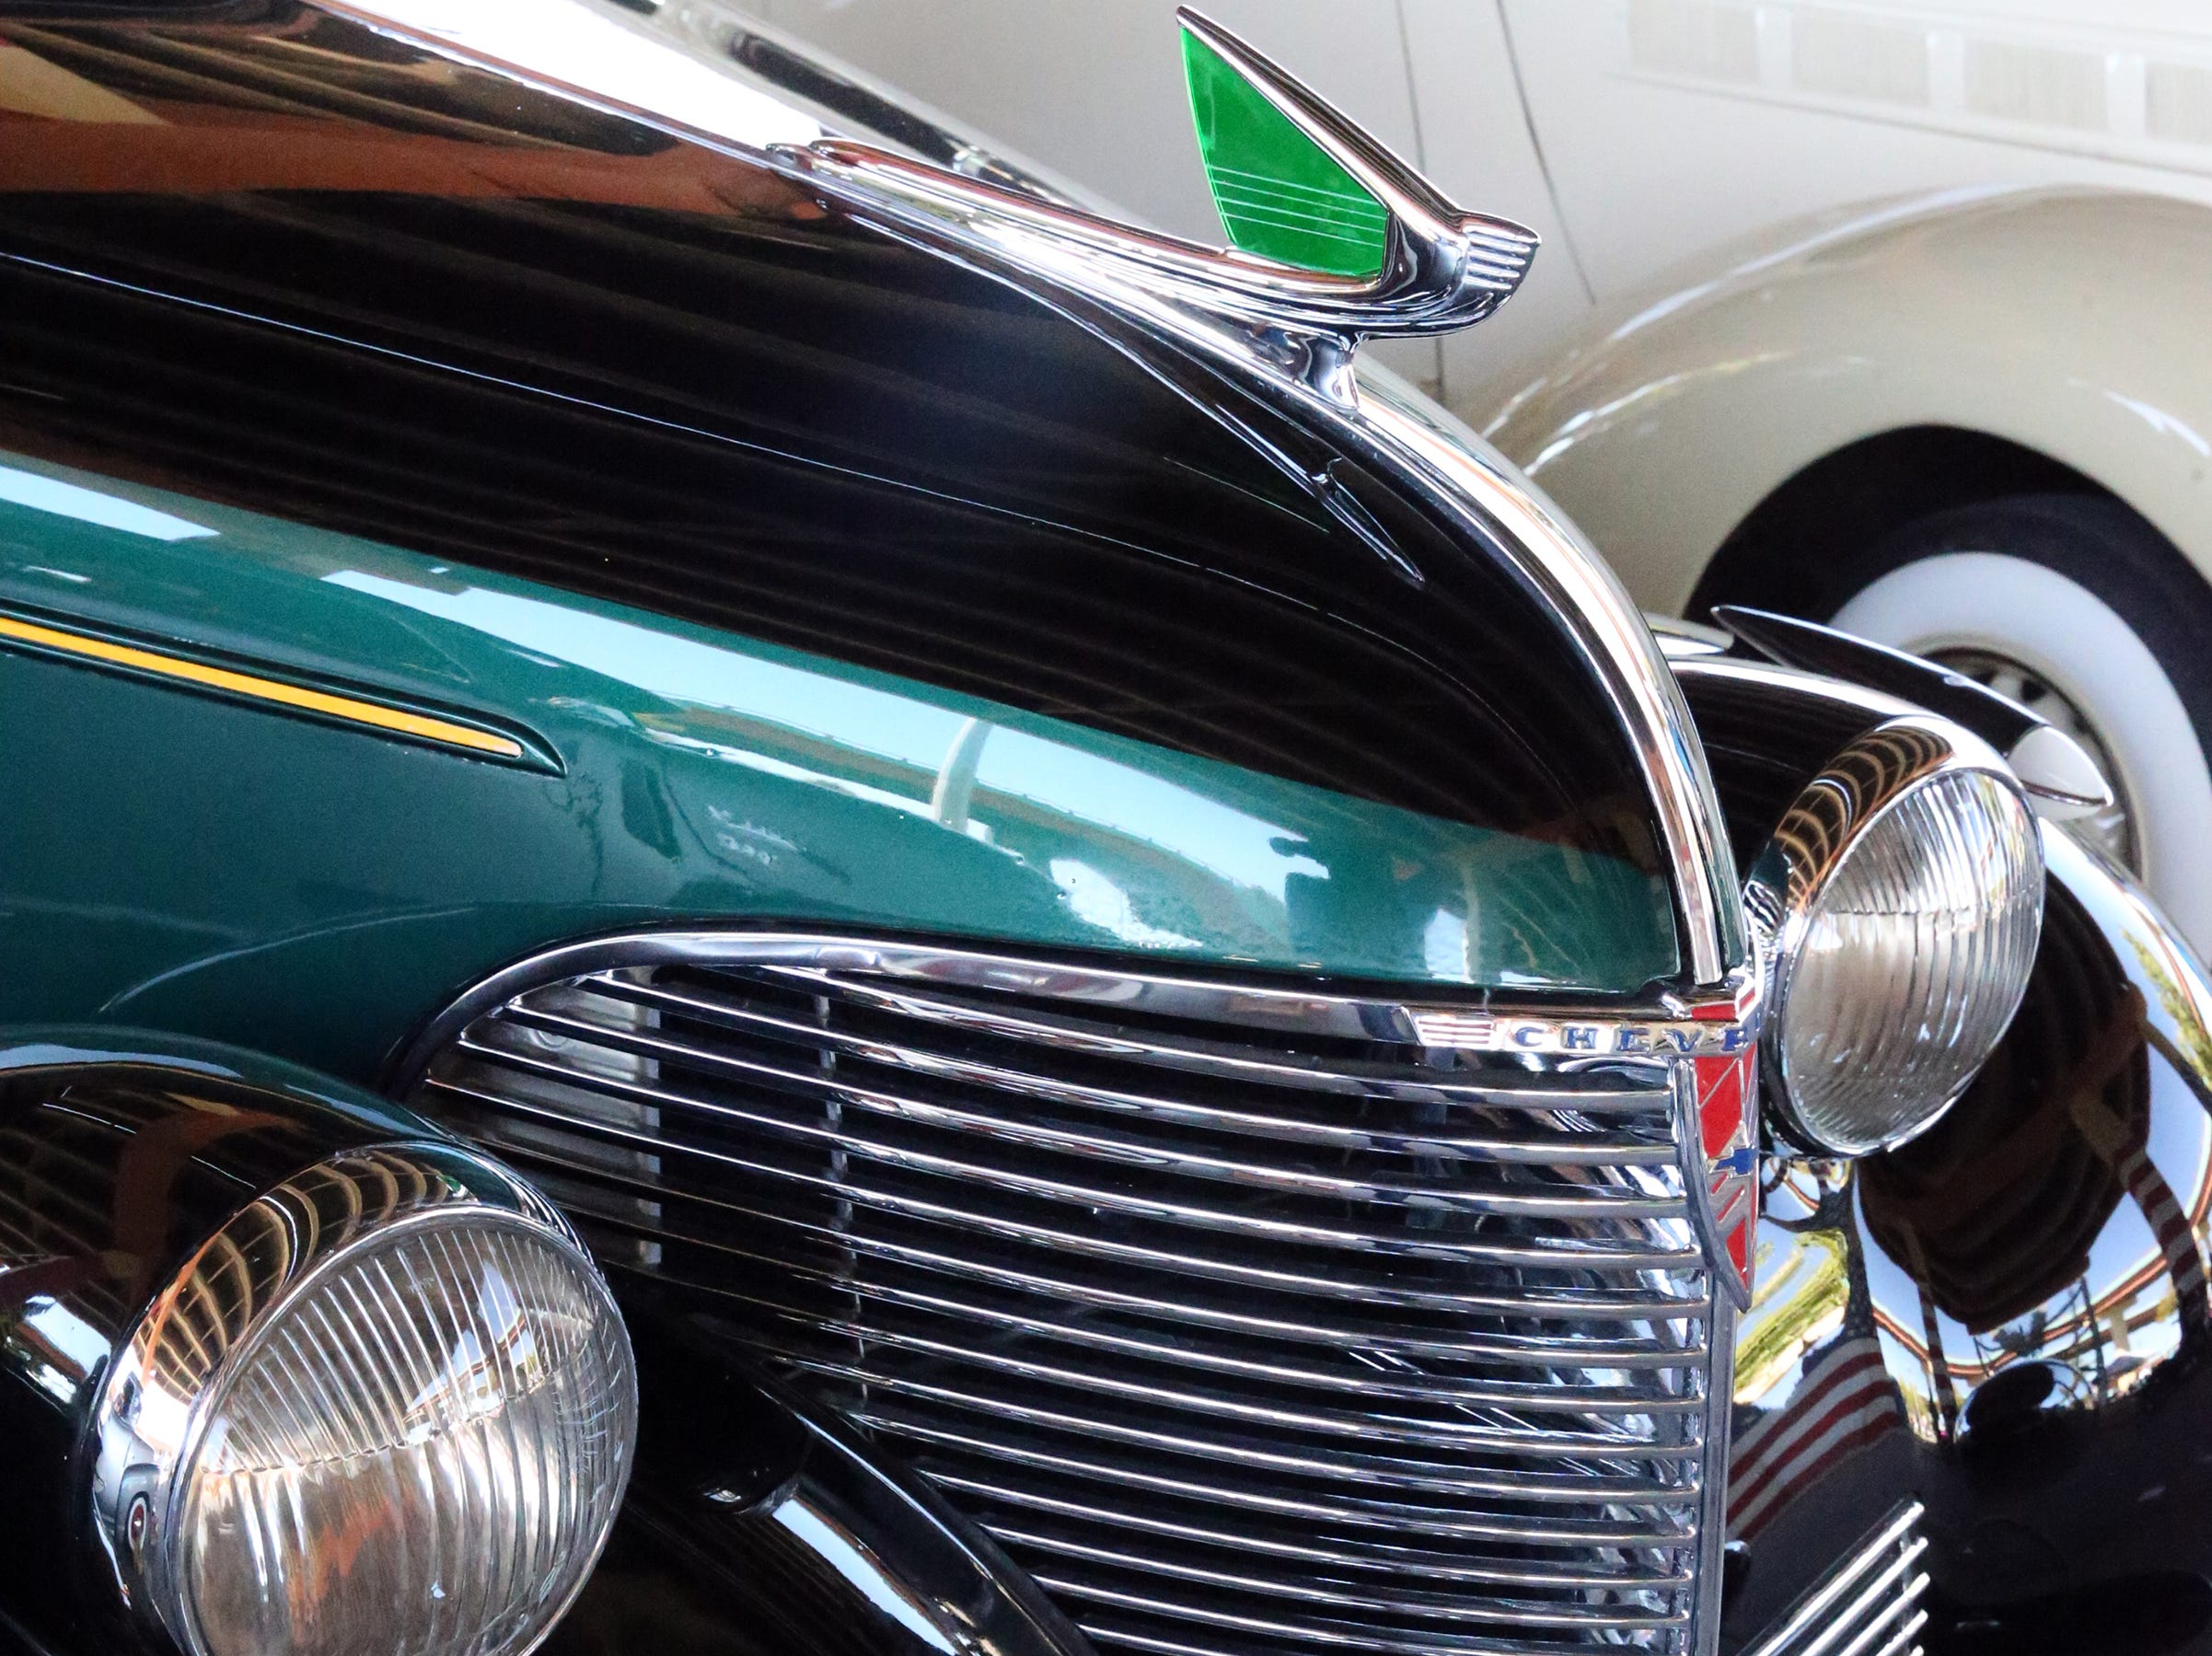 Shiny grille on this 1939 Chevy.